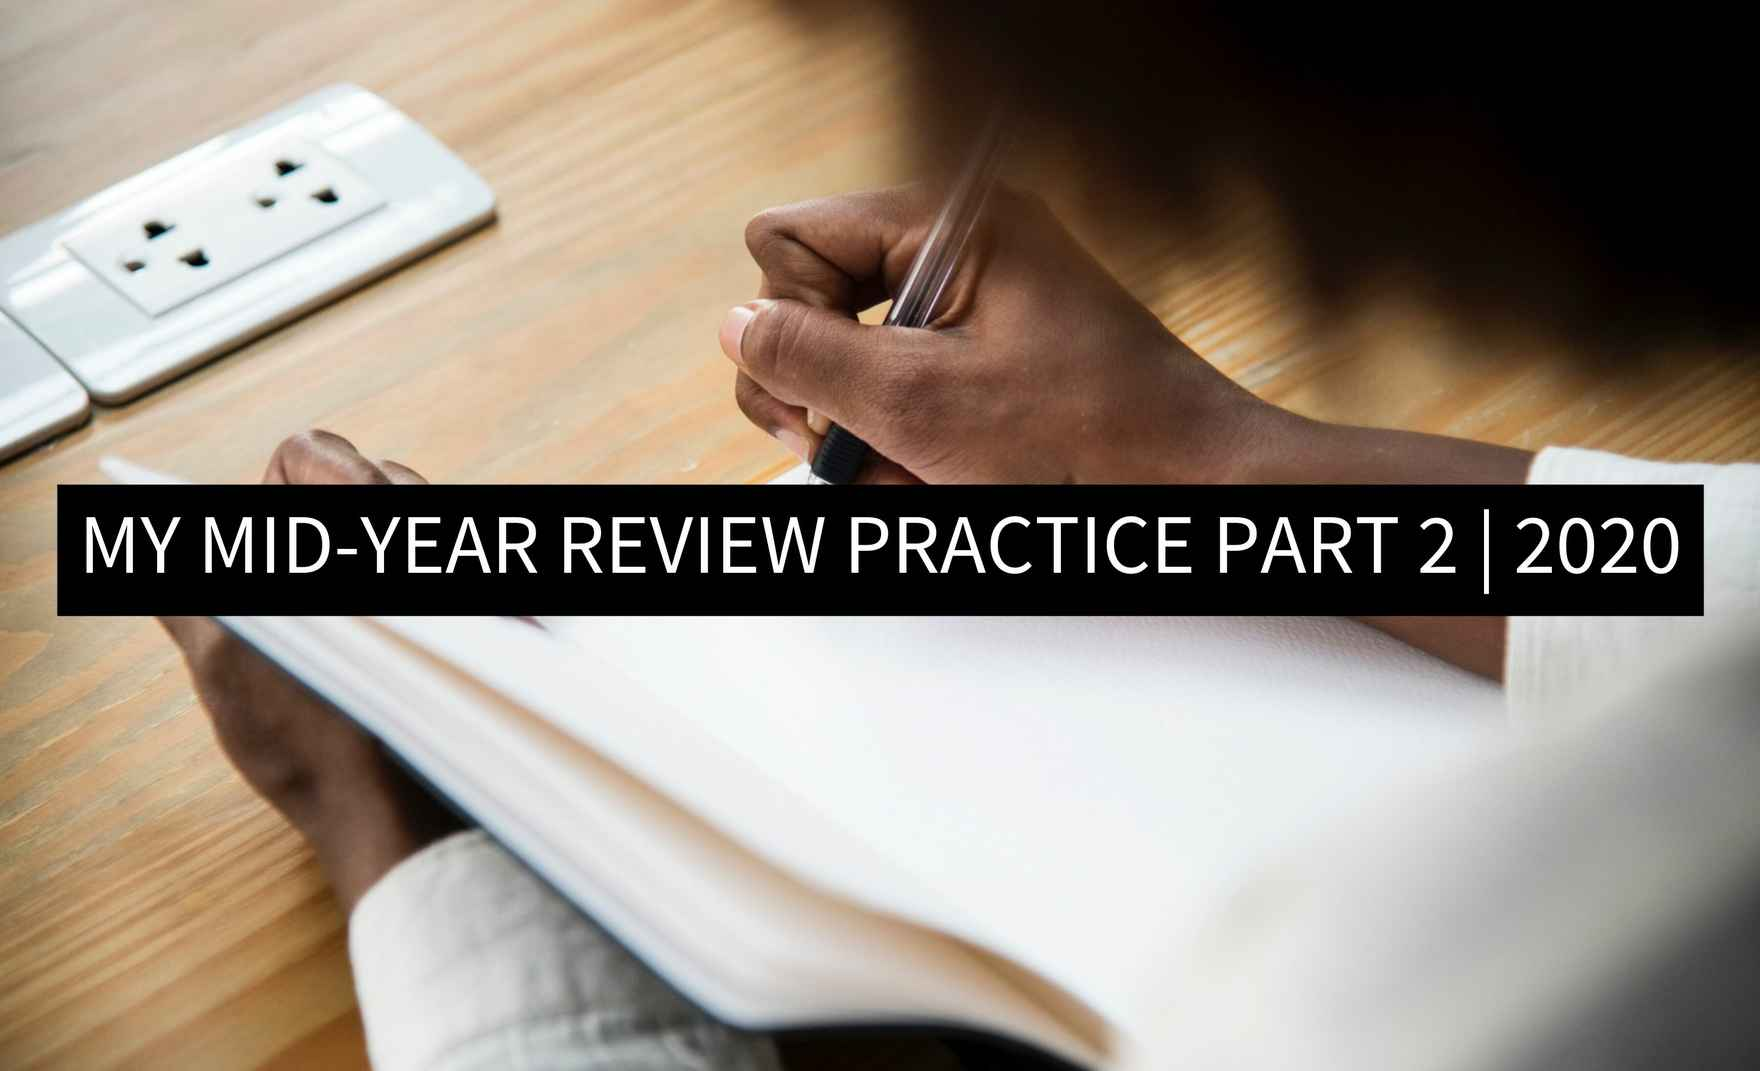 Part 2 - Mid Year Review